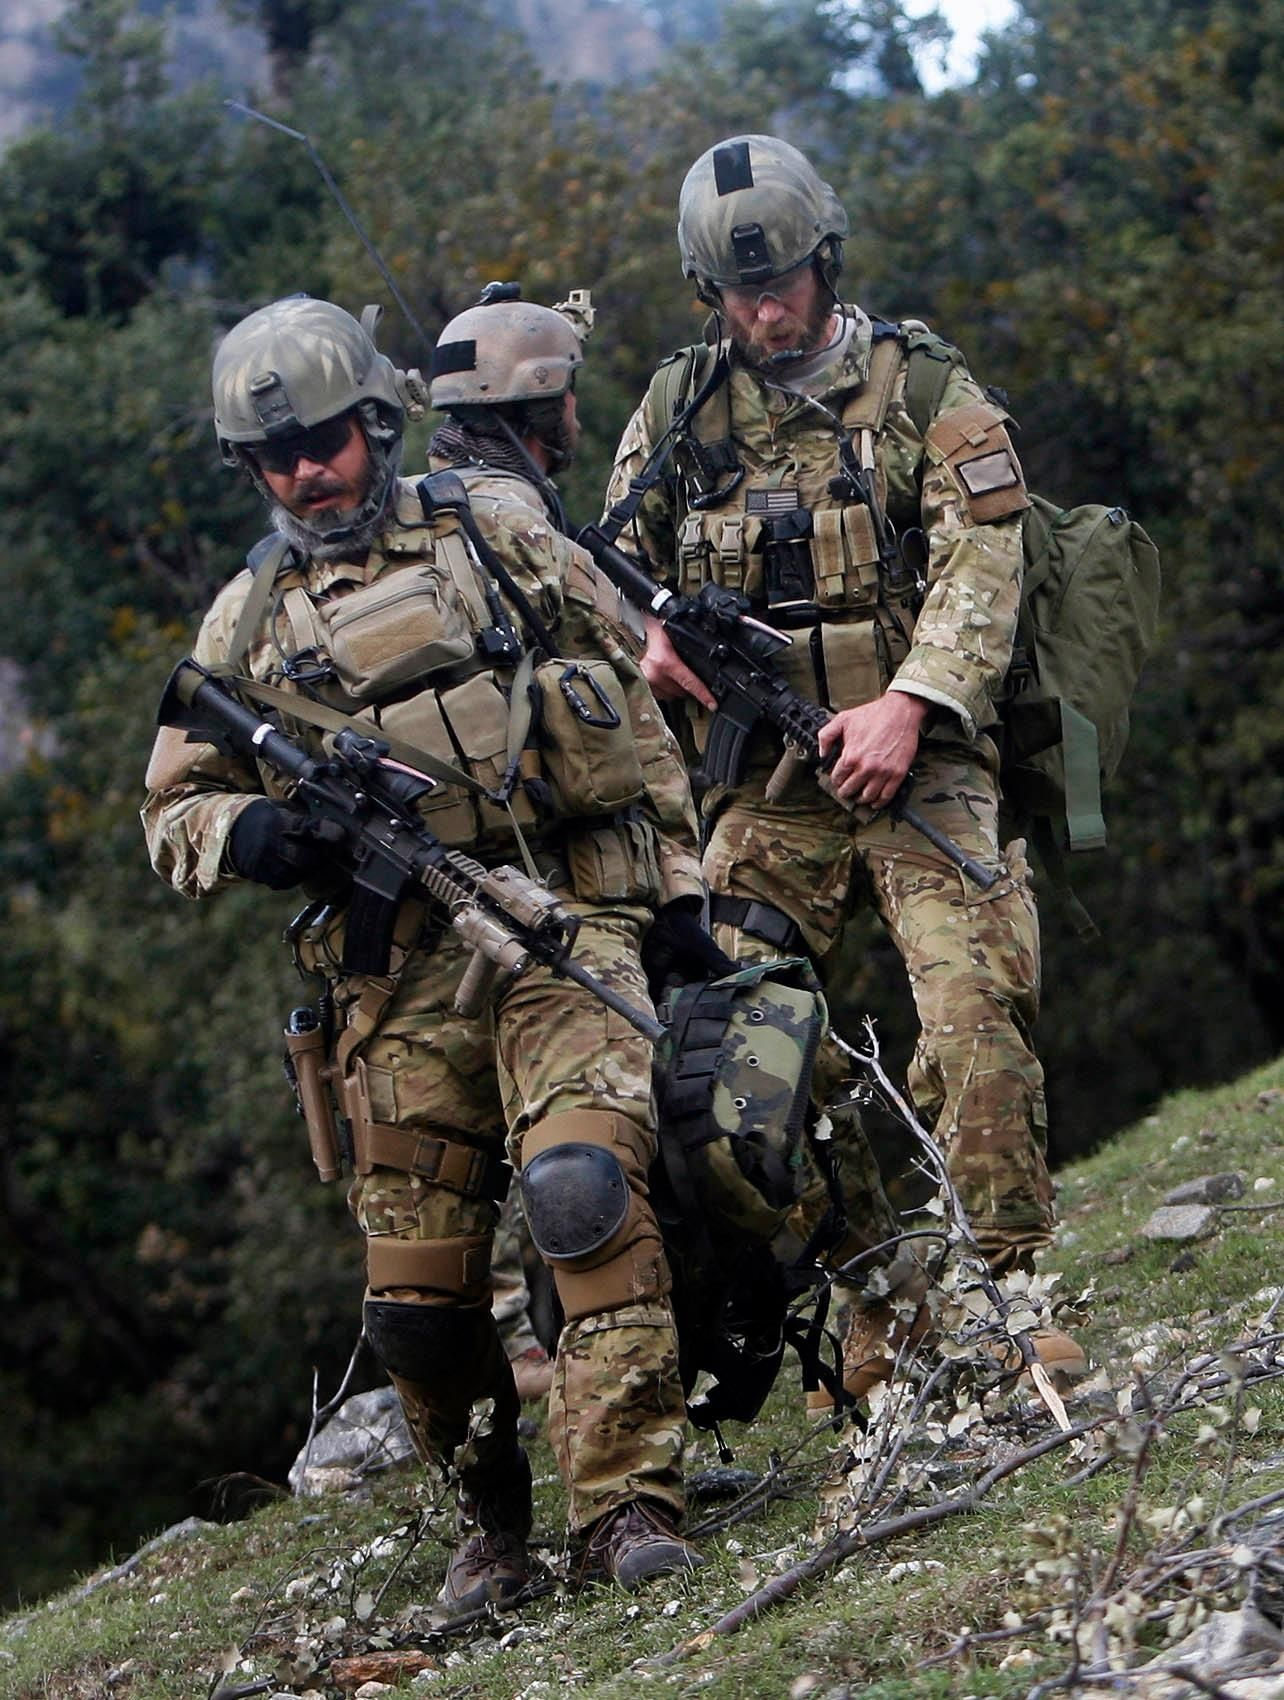 U.S. Special Forces Green Beret Picture of the Day.